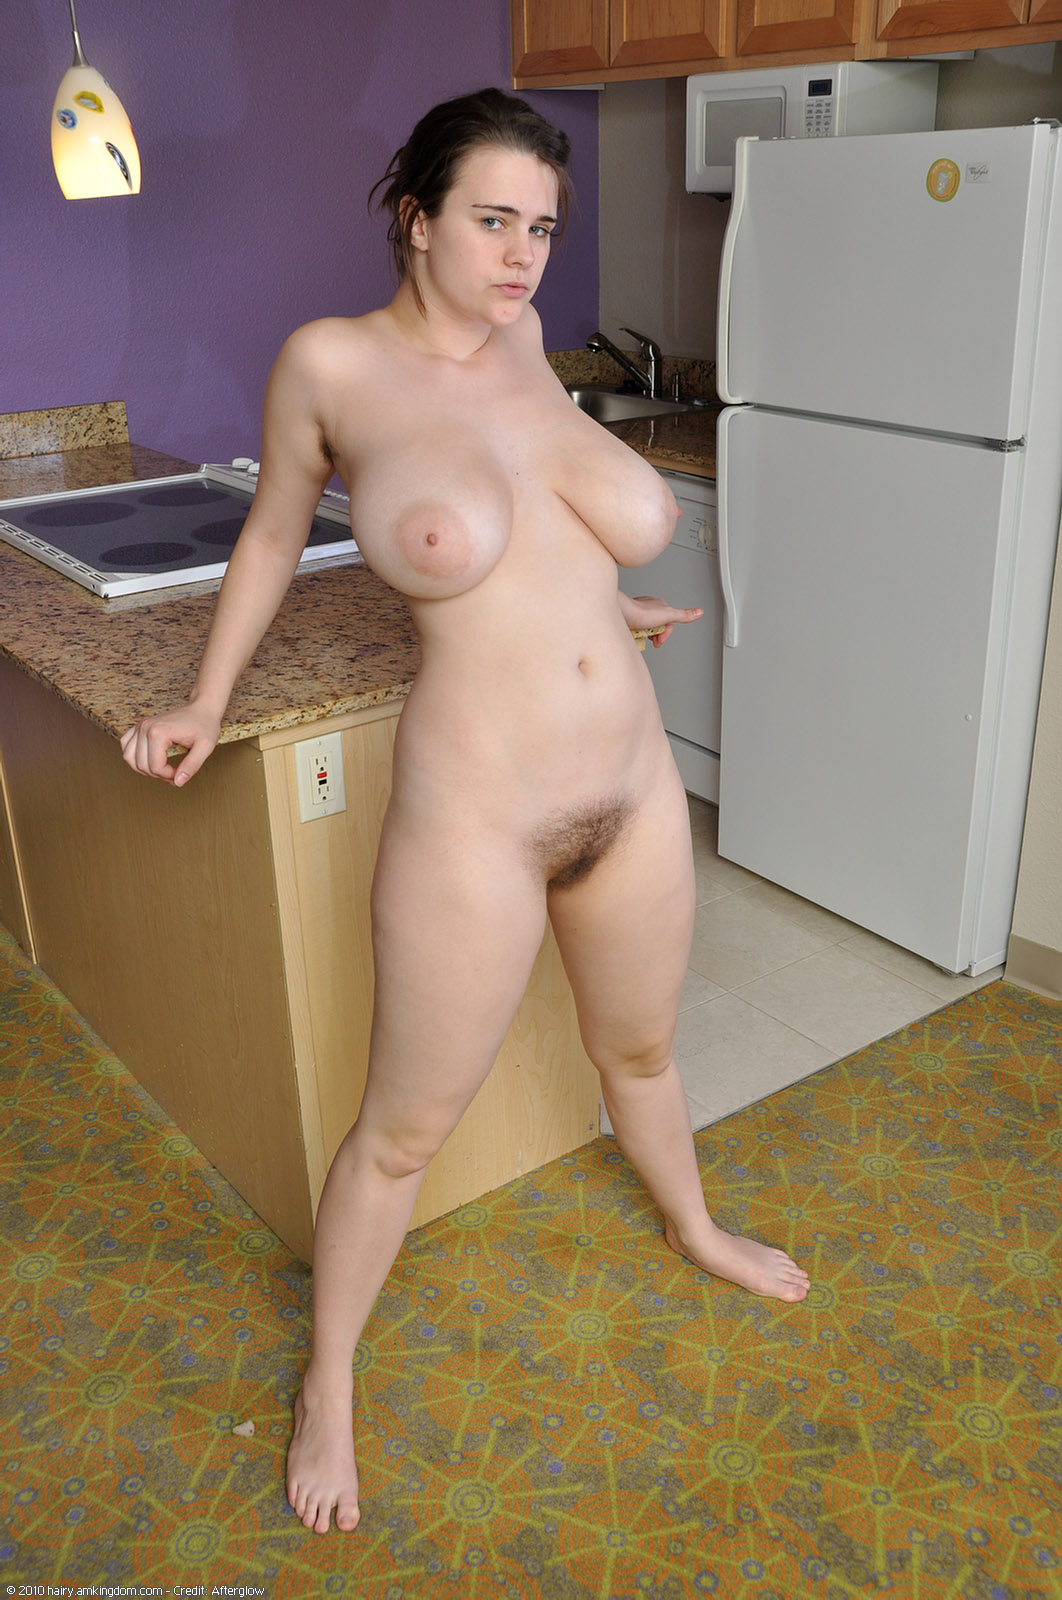 Chubby blonde virgin